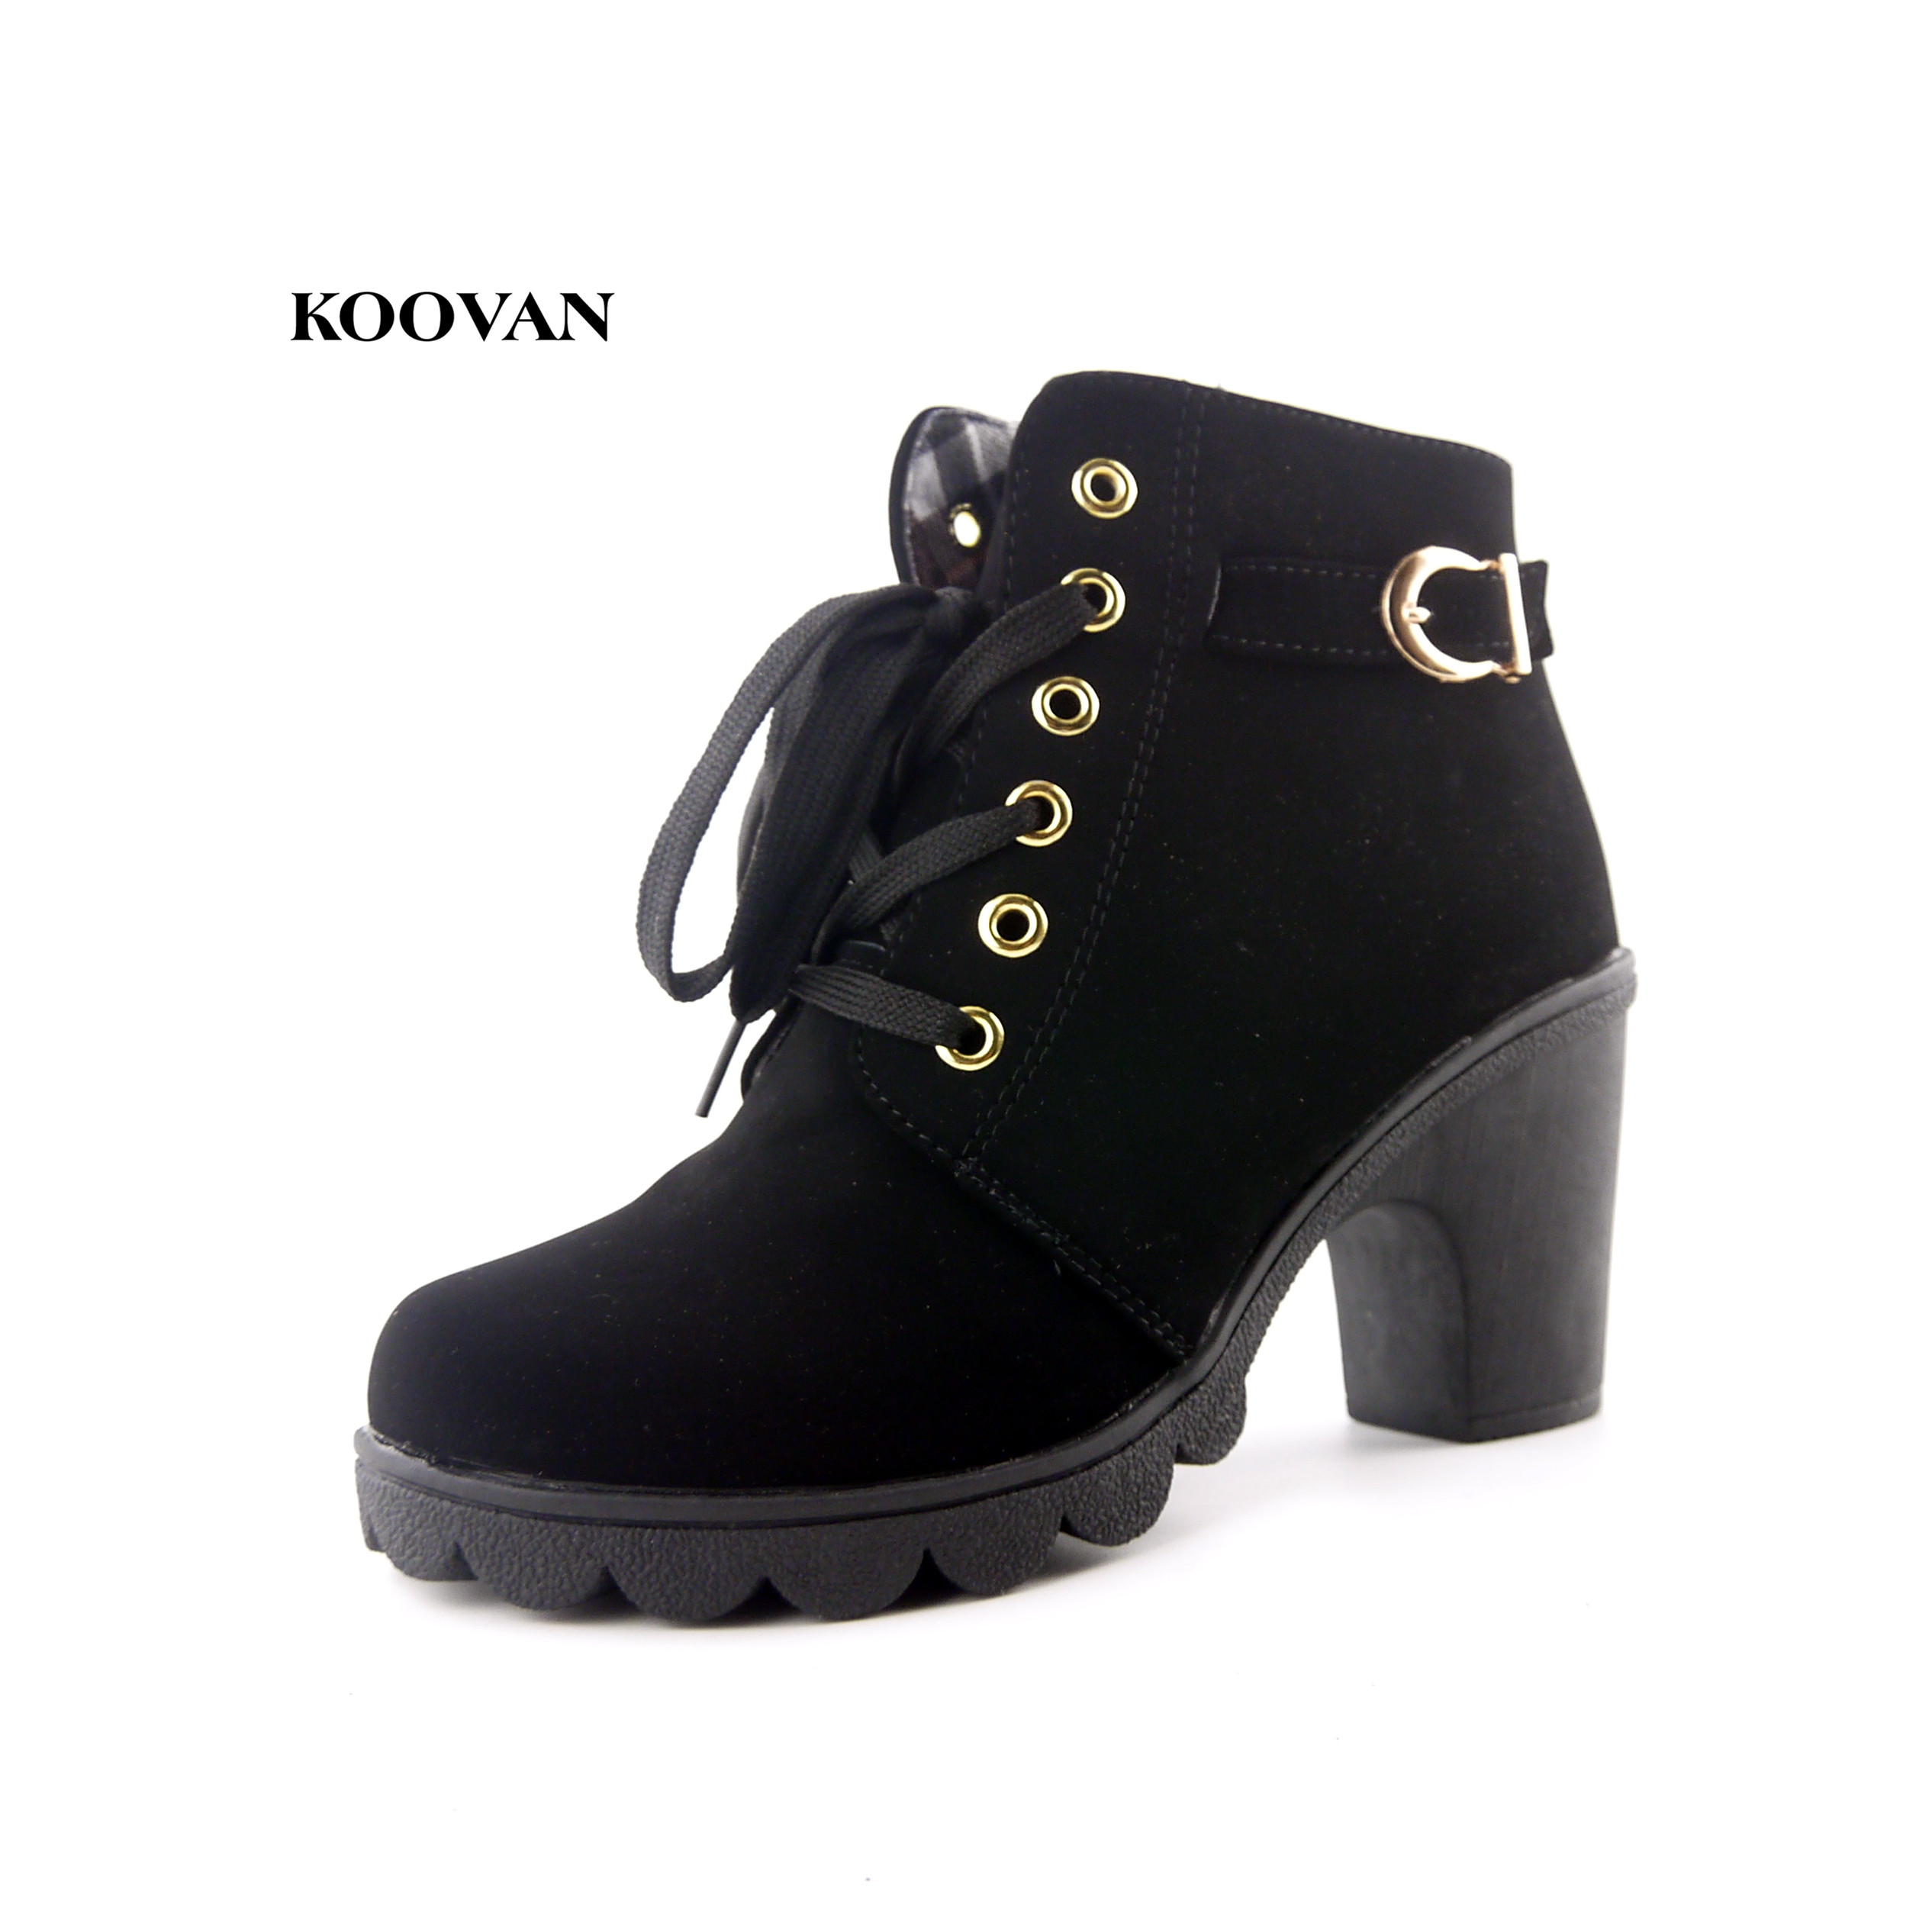 Koovan Women Boots Autumn Winter 2017 New High-heeled 8.5cm Womens Shoe Cross Straps Shoes With Martin Boots Suede Spot ...